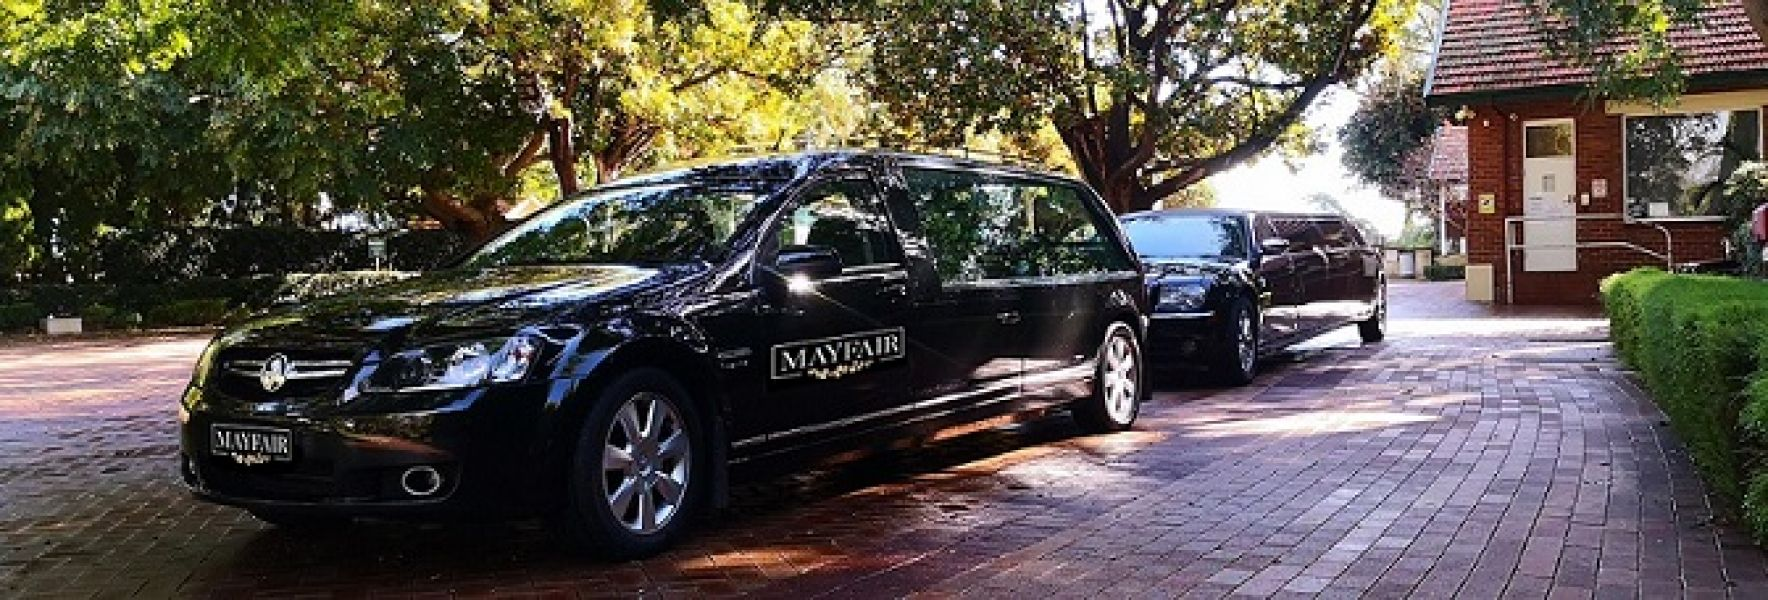 Mayfair Funeral Services Perth